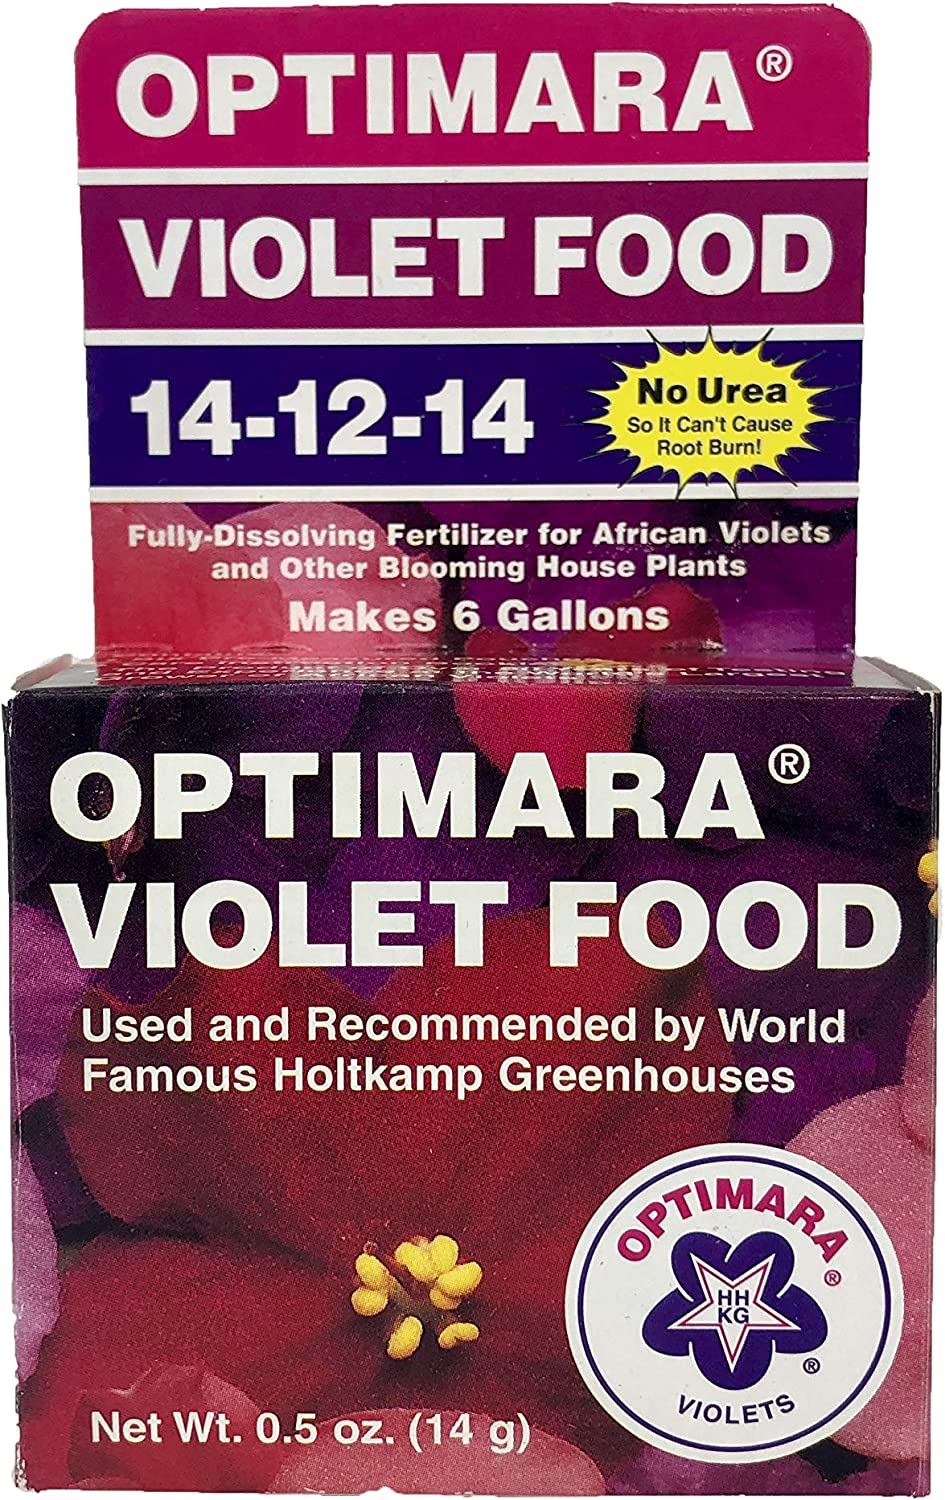 Optimara Violet Food